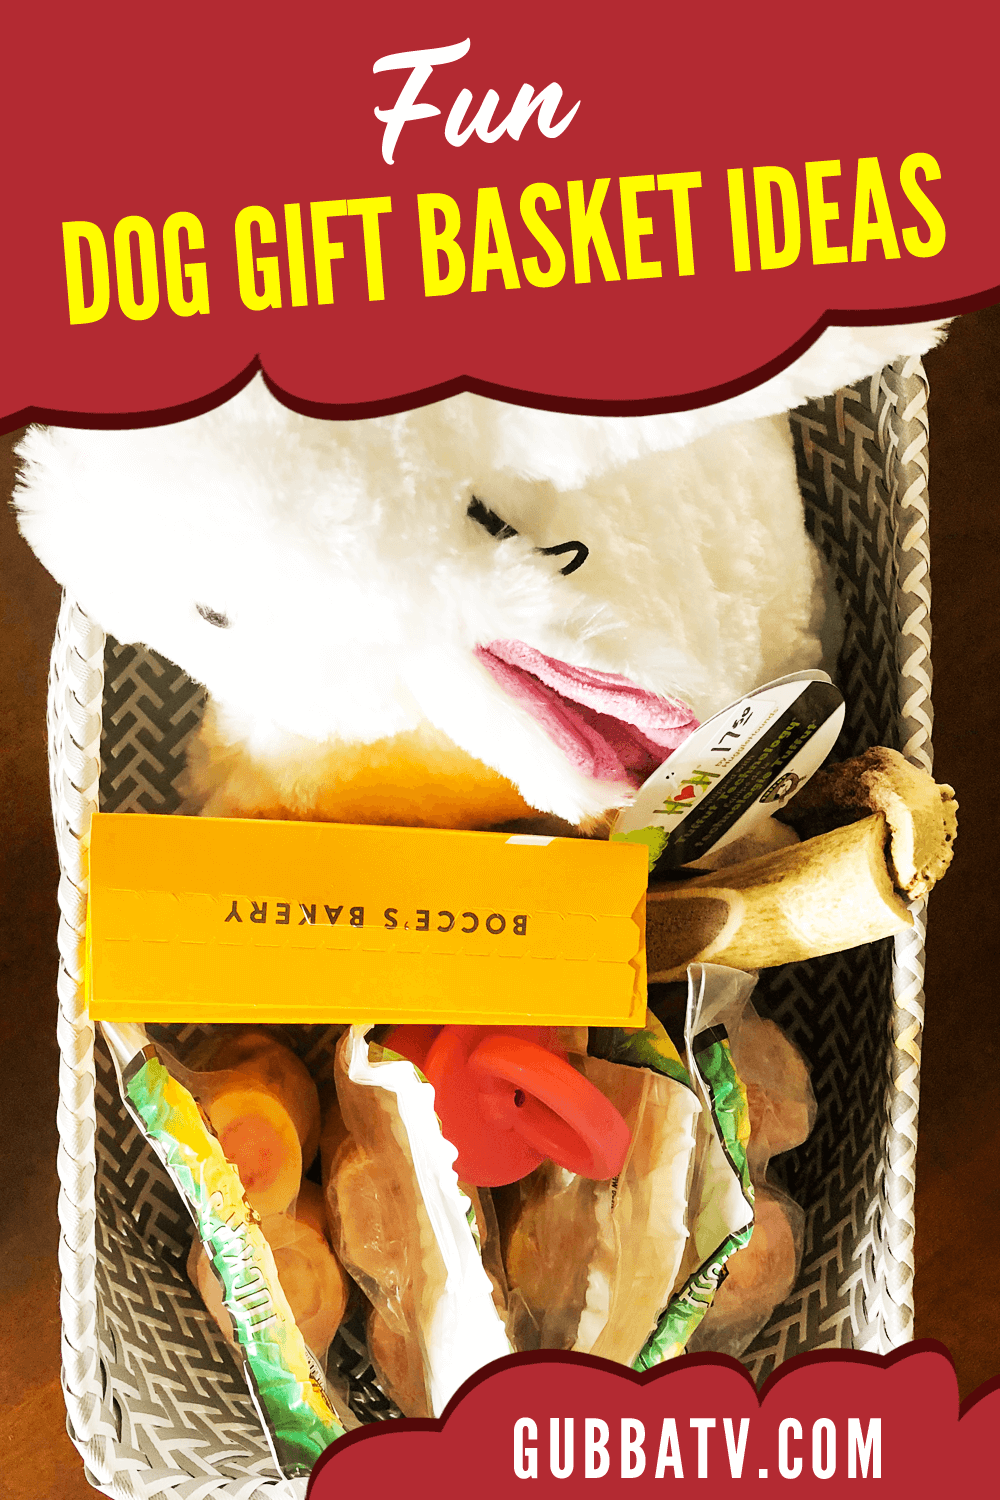 Fun Dog Gift Basket Ideas